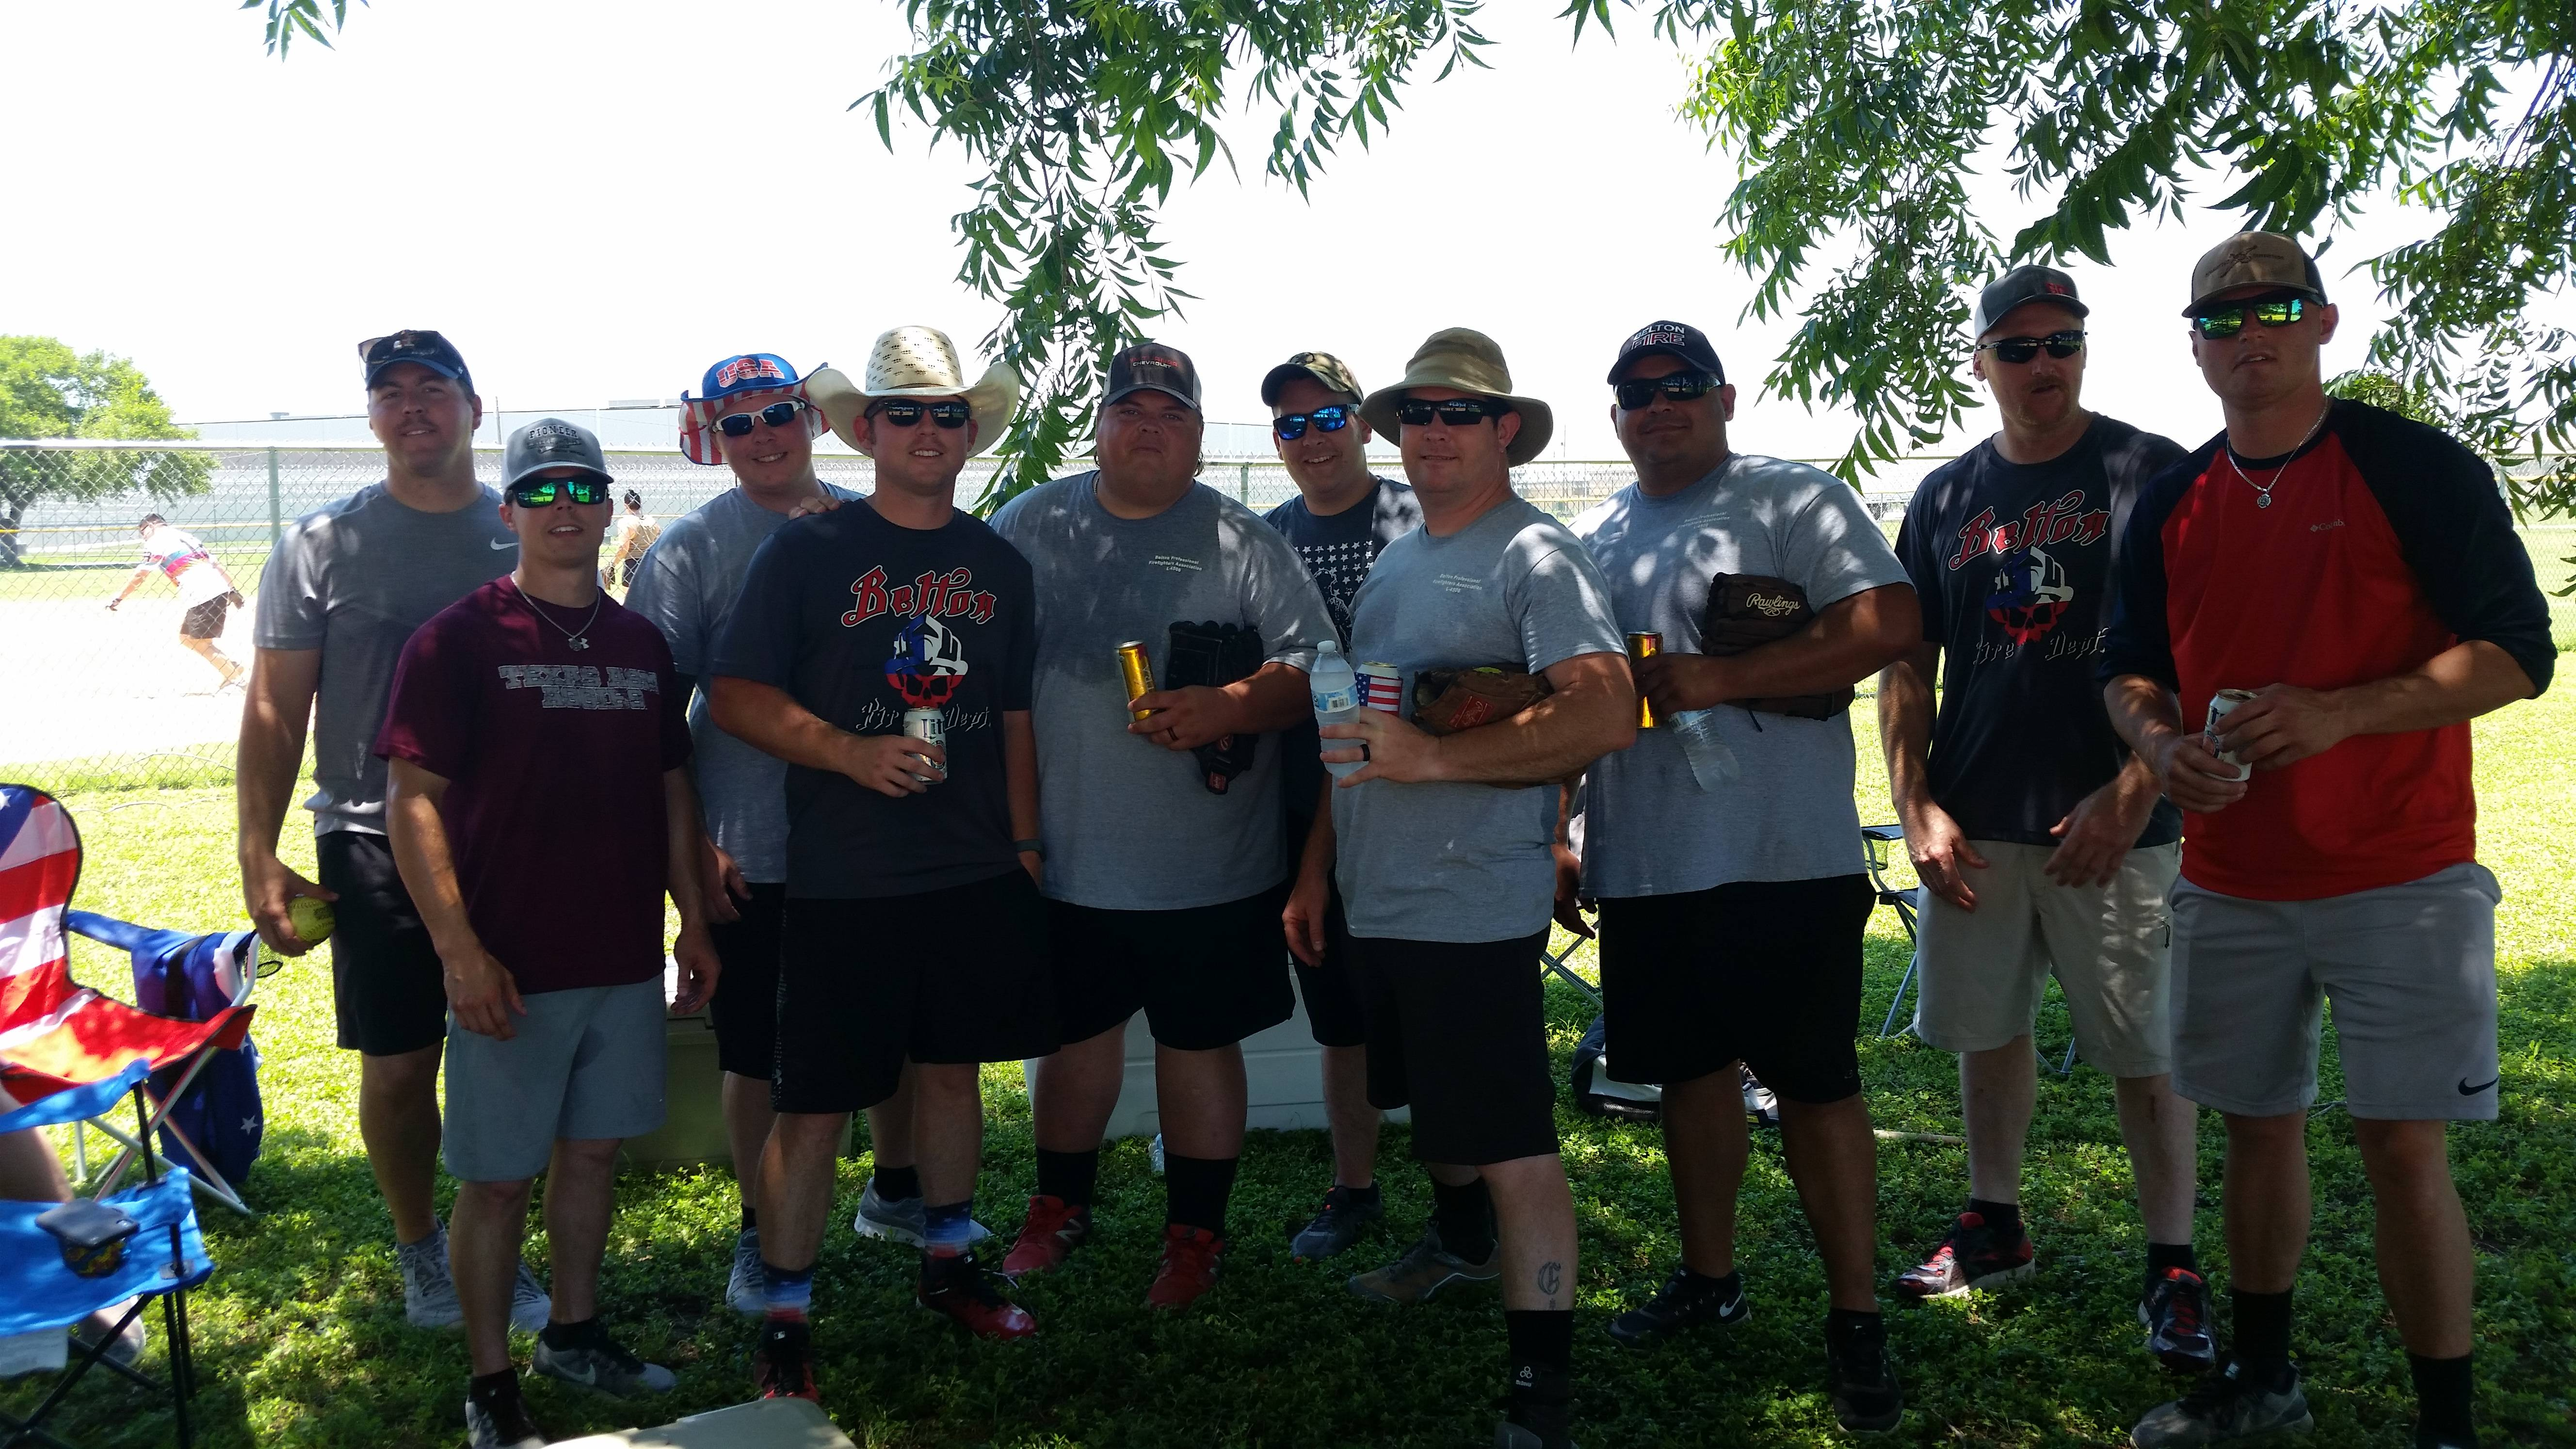 Belton FD team has won 1st place three times in the history of this tournament